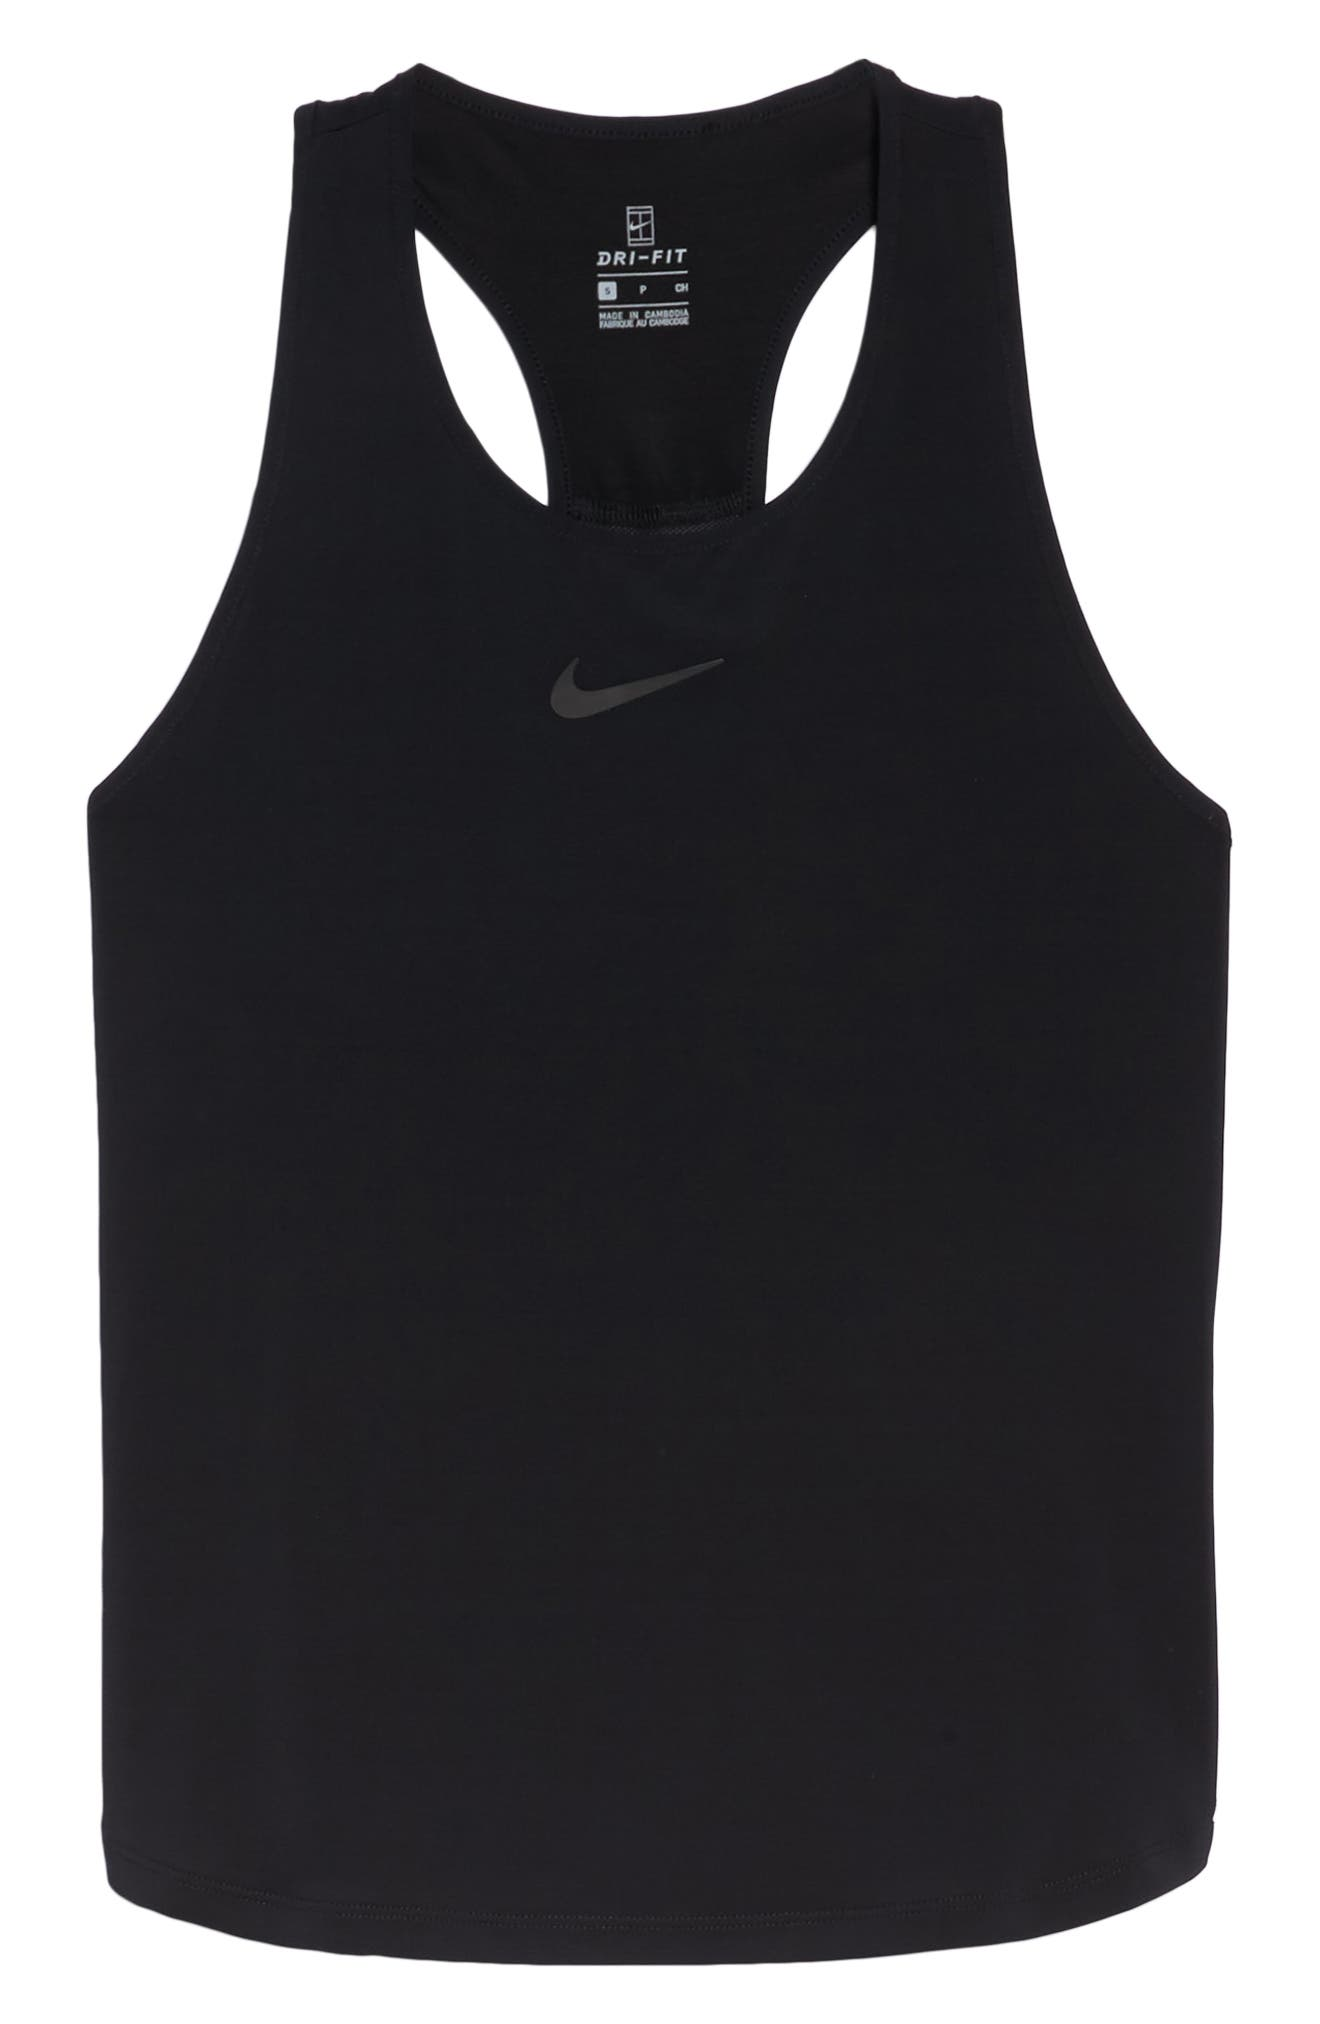 Court Dry Slam Tennis Tank,                             Alternate thumbnail 6, color,                             010